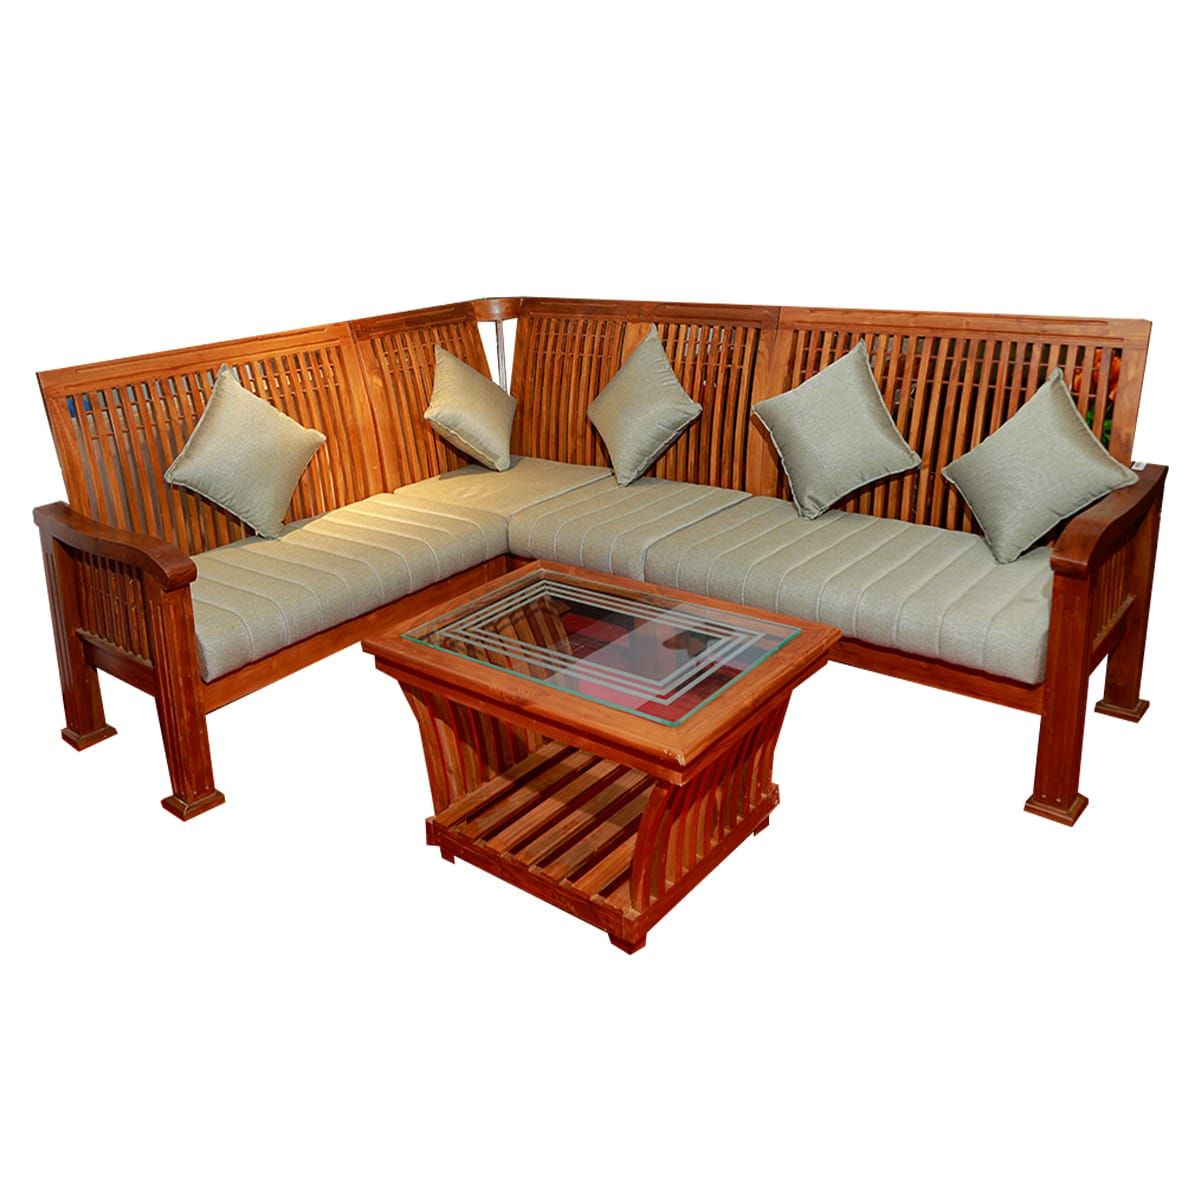 Sofa Upholstery Thrissur Pin By Indograce Emart On Indograce Furniture Wood Sofa Teak